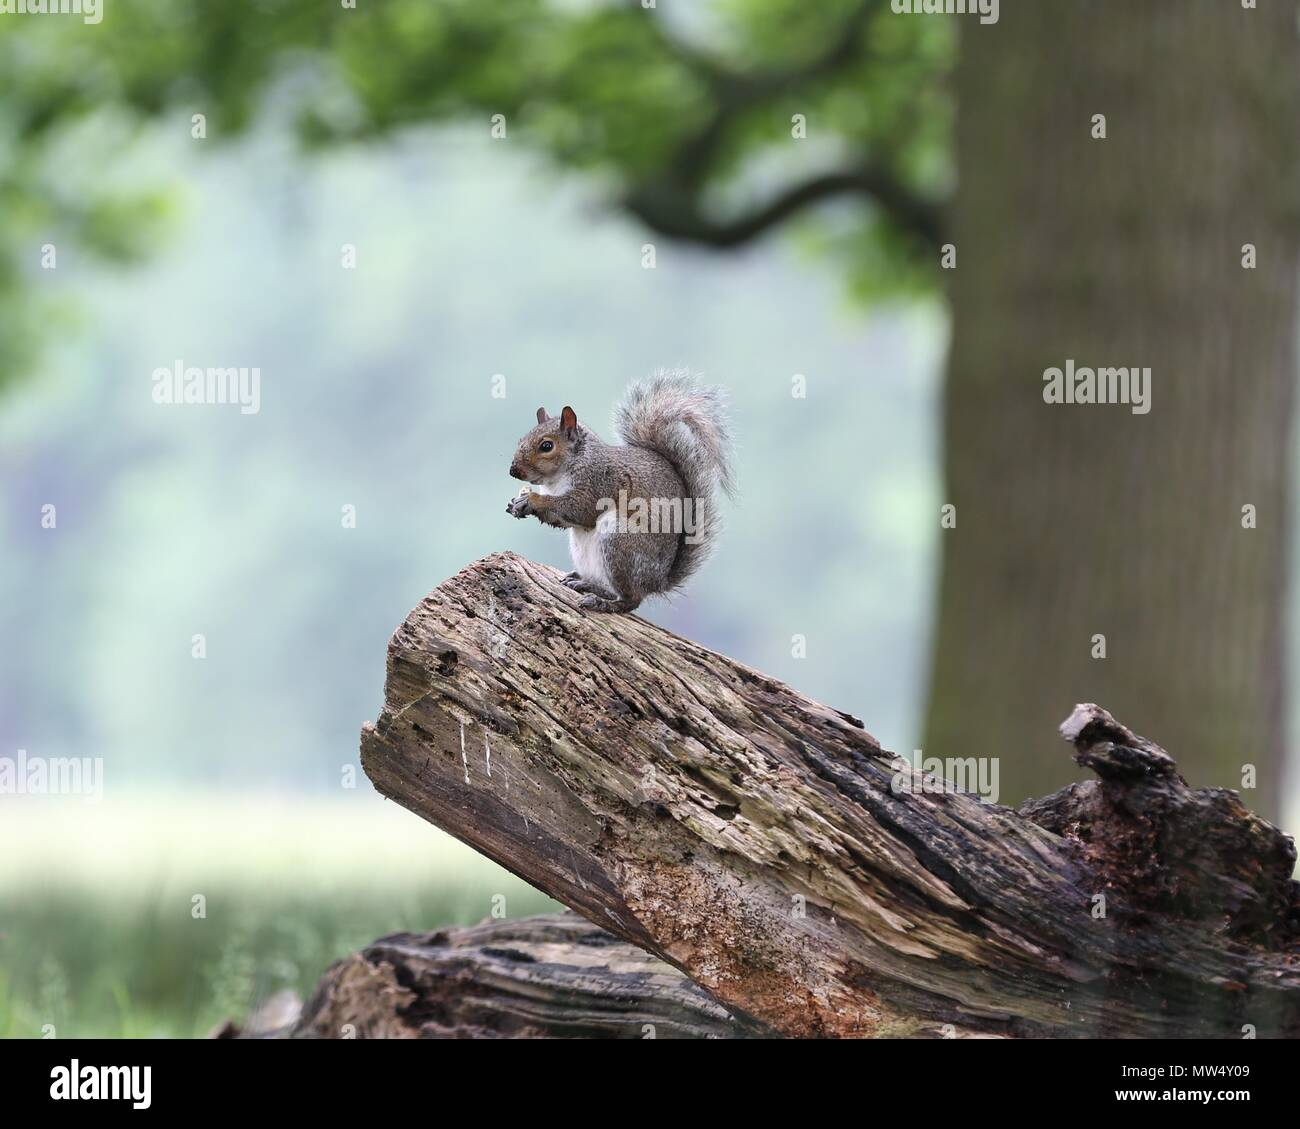 Grey Squirrels Stock Photos & Grey Squirrels Stock Images - Alamy